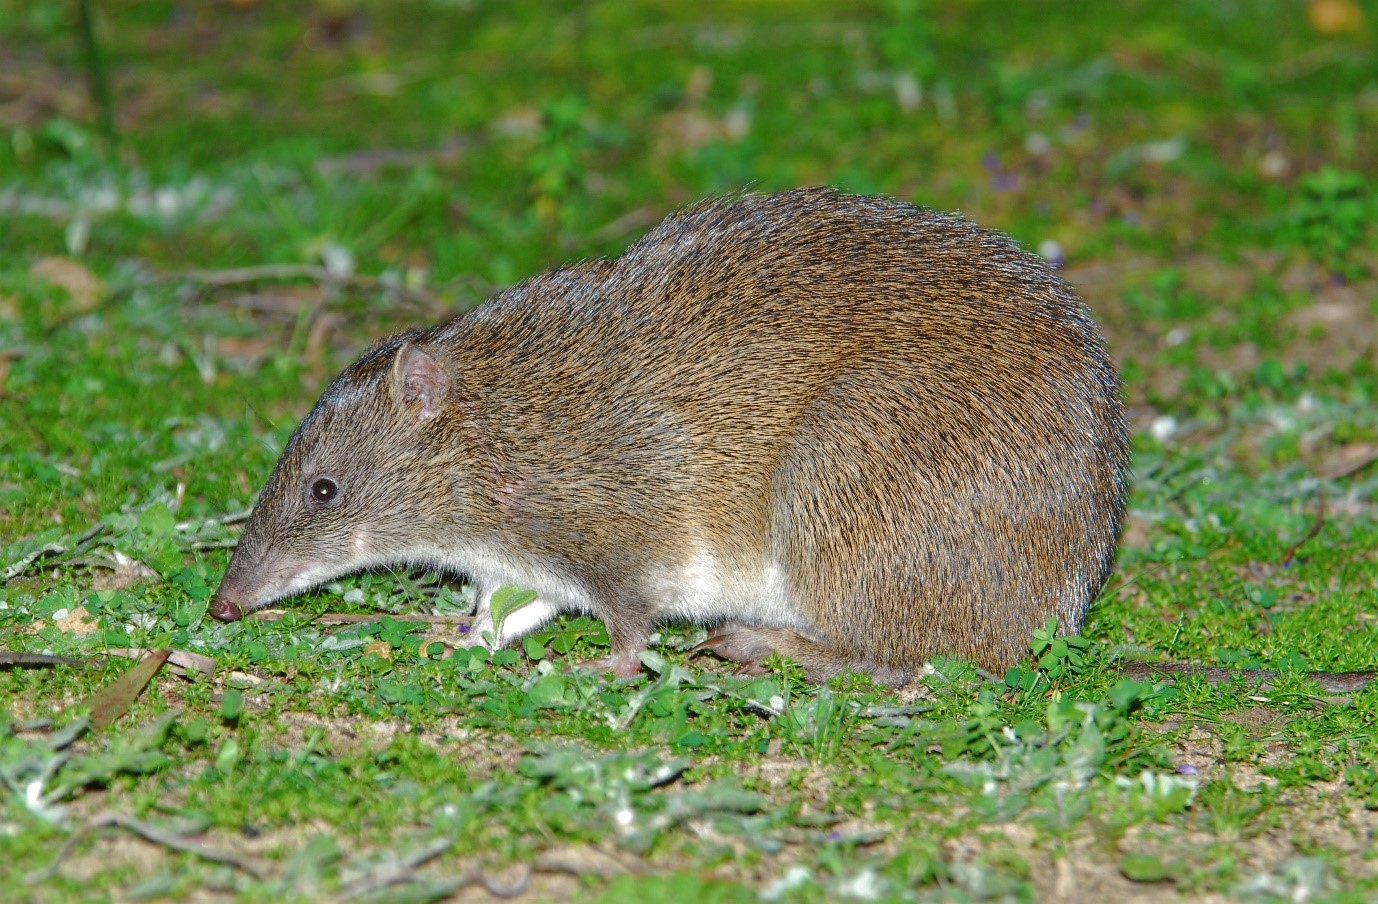 Figure 1. The quenda is a marsupial bandicoot, endemic to south-western Australia that digs prolifically while searching for subterranean food.